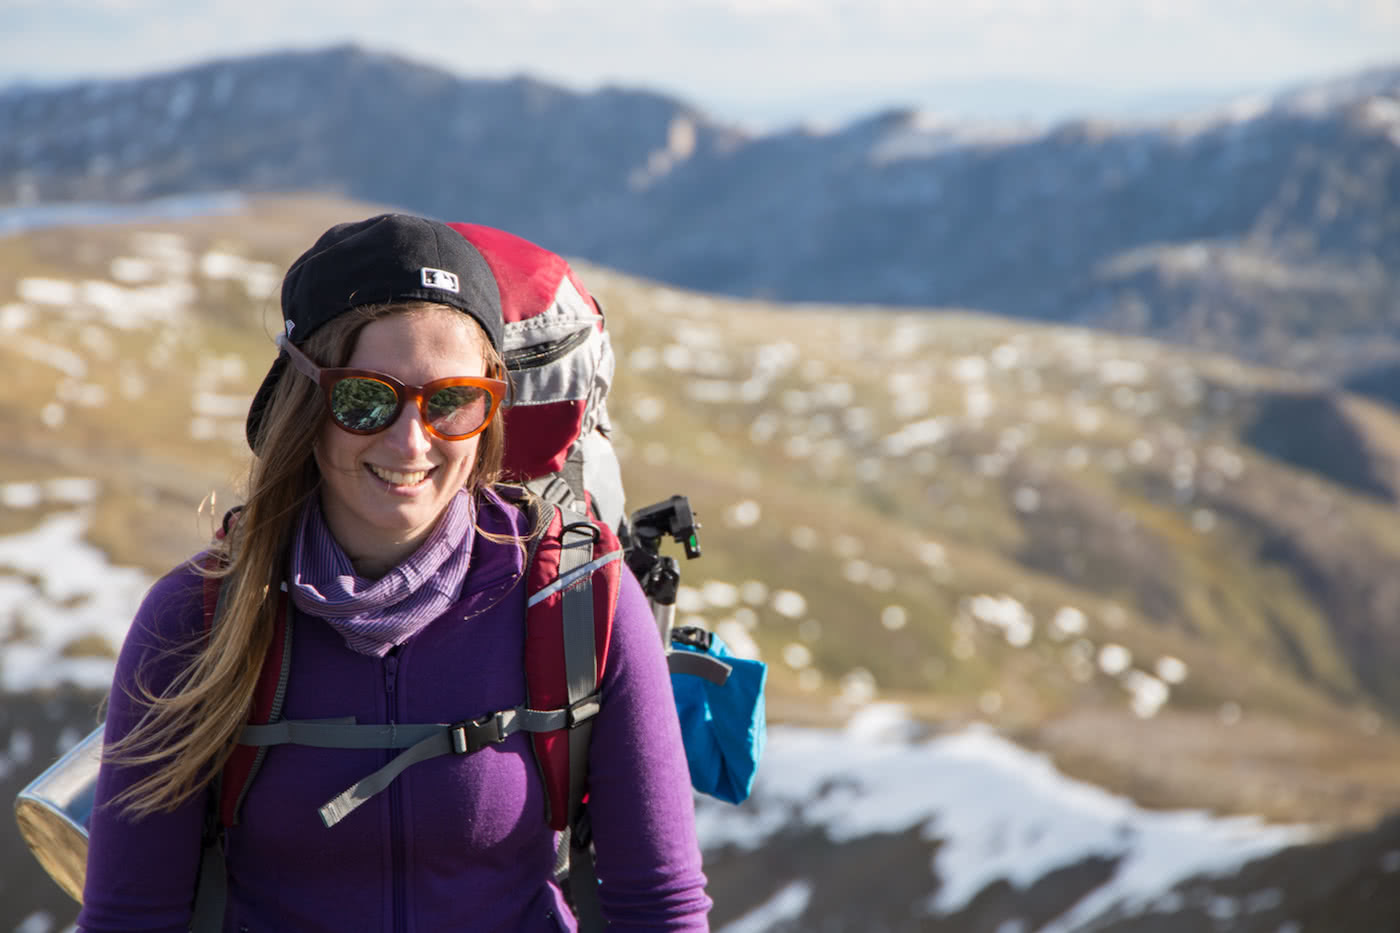 Rachel Dimond // Explorer Of The Month - March '18, Rachel - Kozzi, woman, hiker, backpack, sunnies, purple, snow, kosciusko